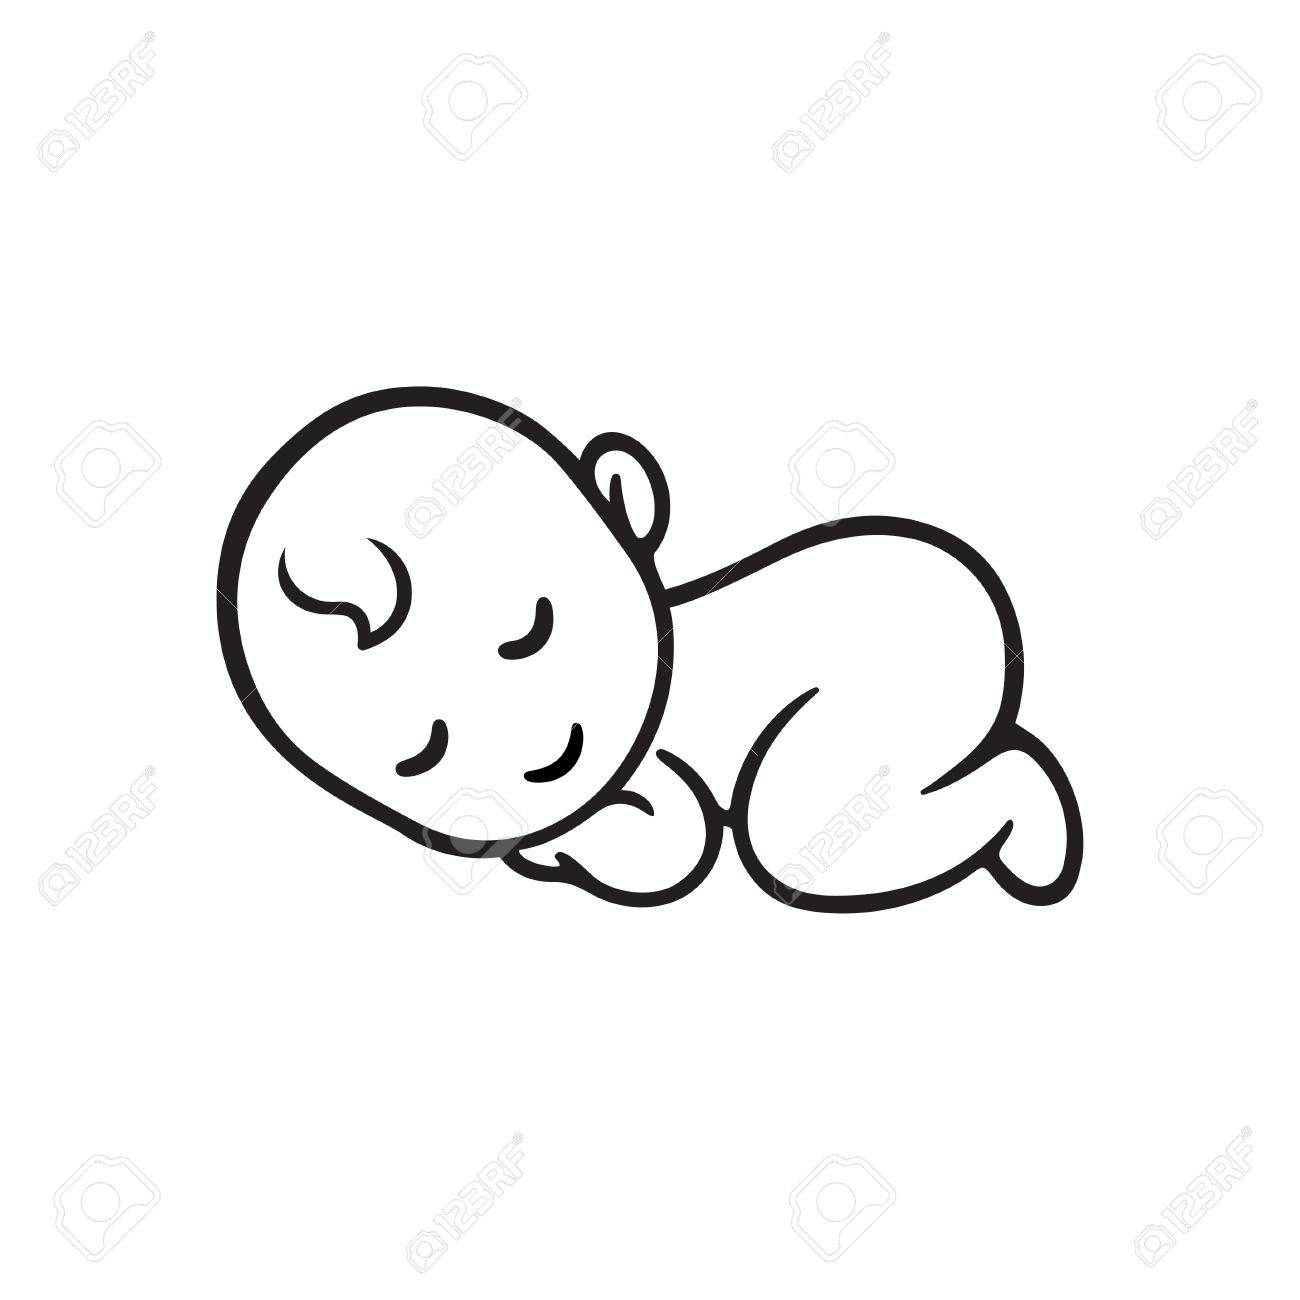 Sleeping baby silhouette stylized line cute simple vector illustration stock vector 68834647